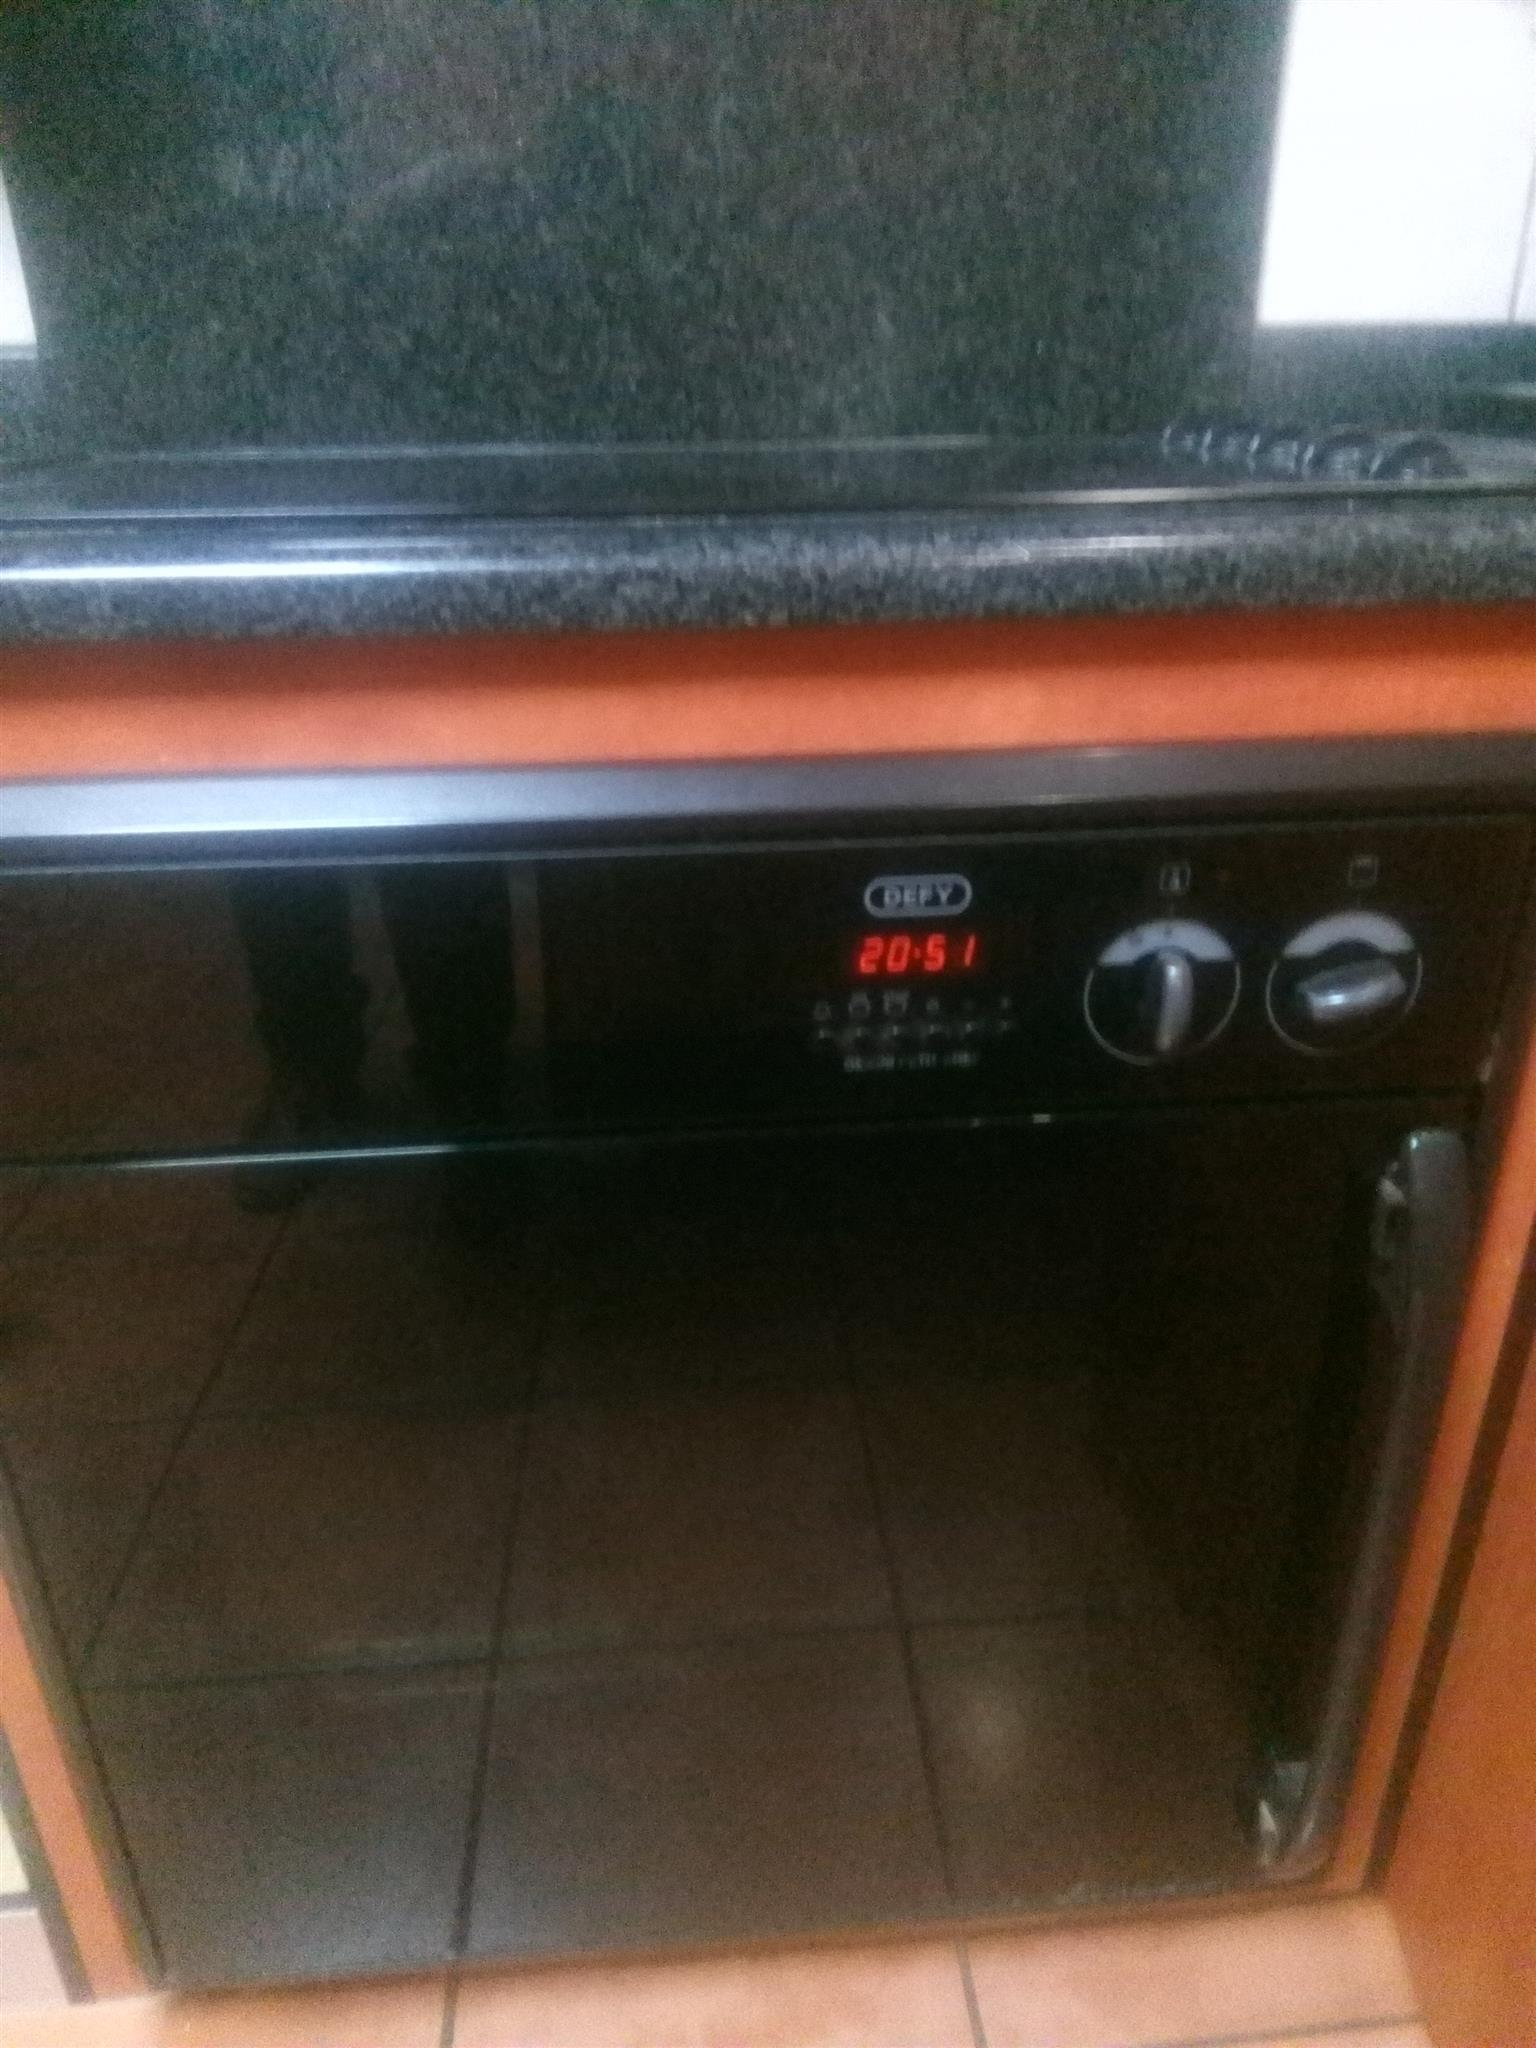 Defy oven plus a glass top defy plate plus a defy hob all for R2000 or nearest cash offer